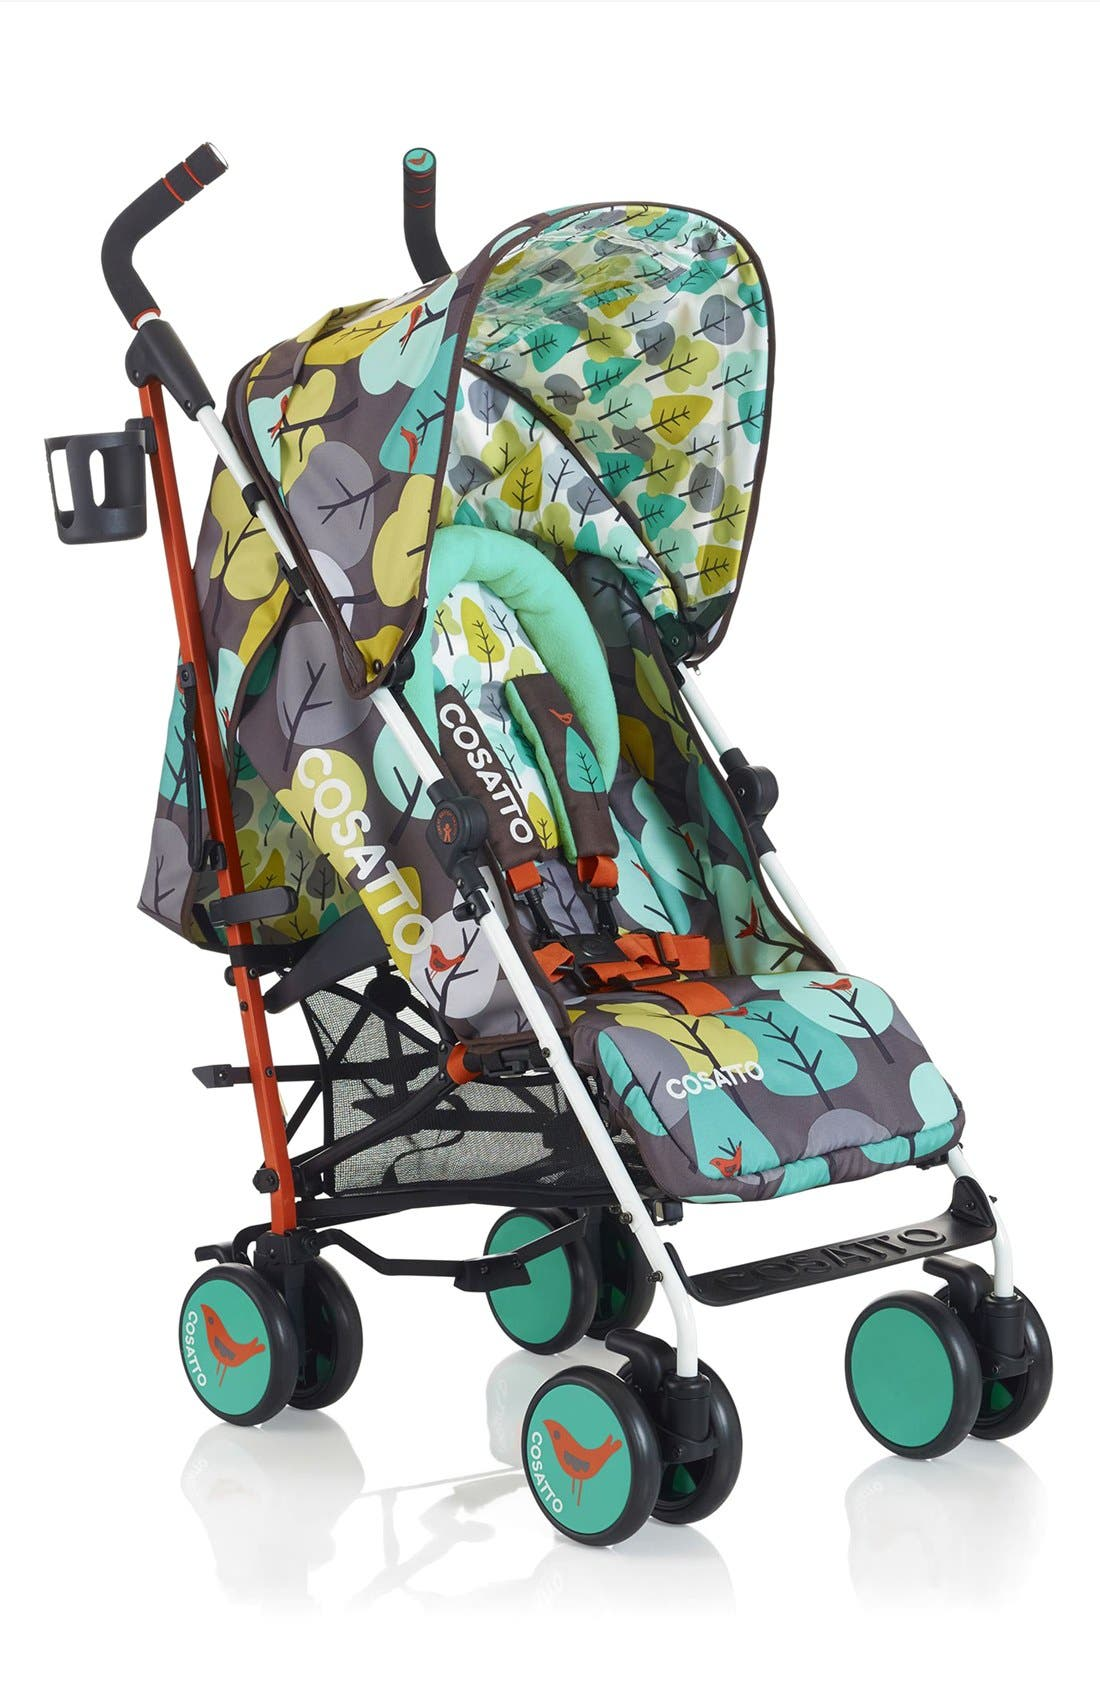 Alternate Image 1 Selected - Cosatto 'Supa - Firebird' Pushchair Stroller